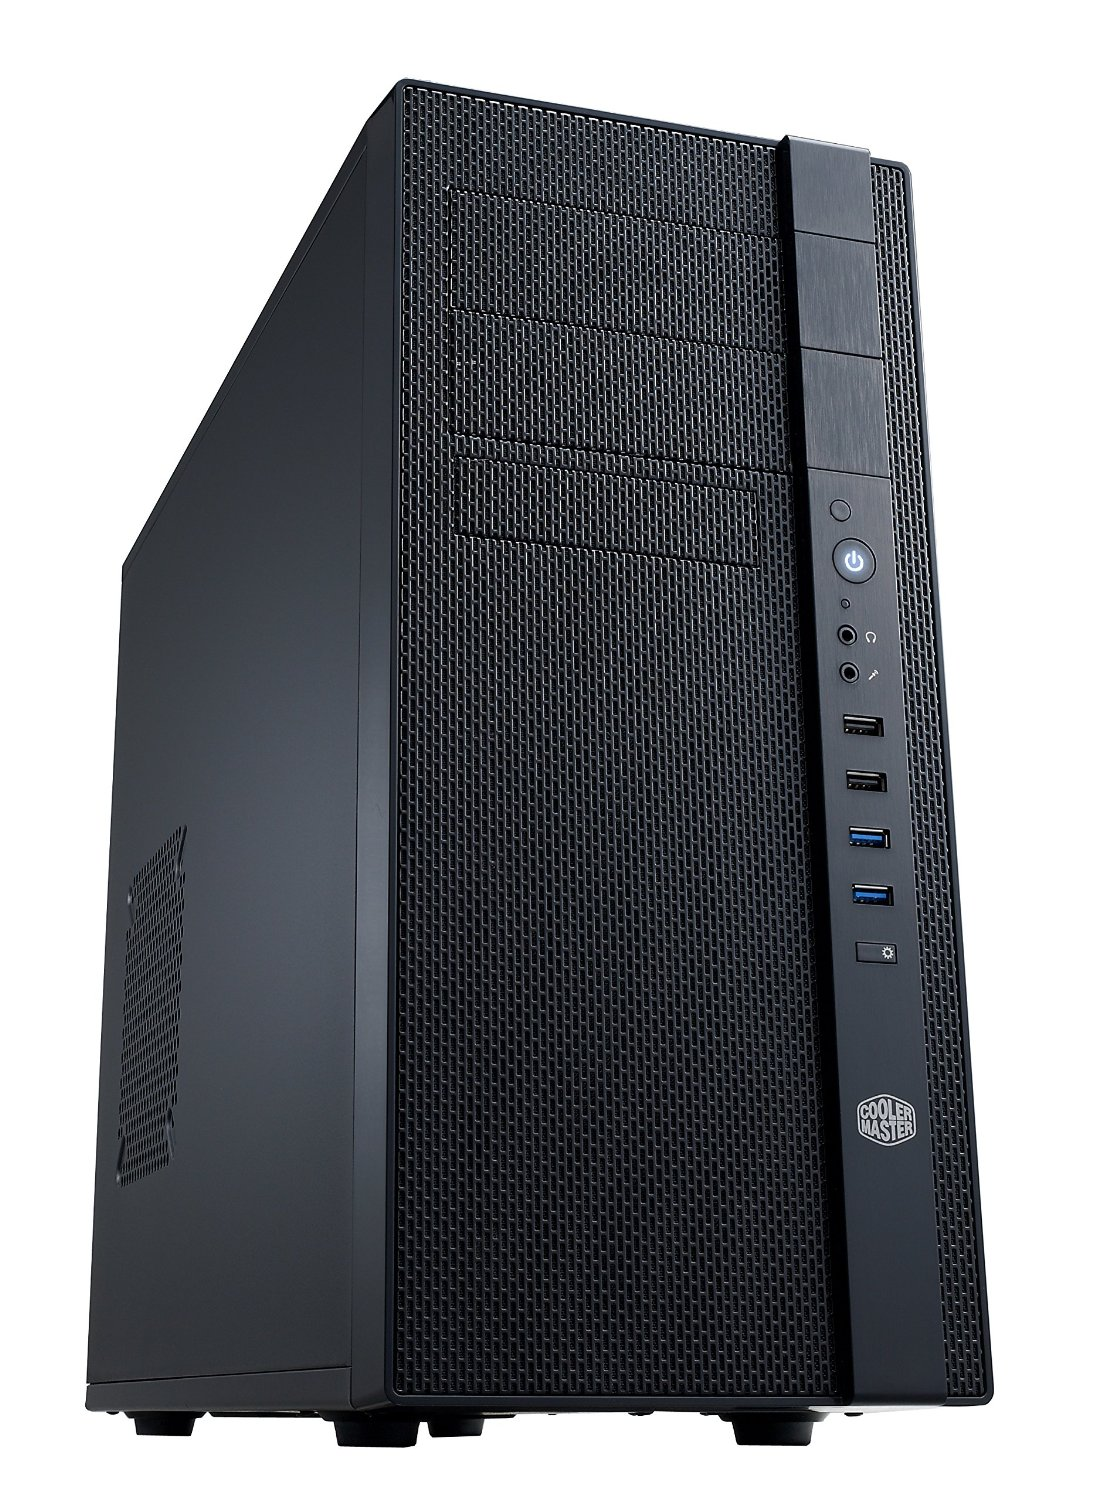 Cooler Master N400 Mid-Tower Fully Meshed Front Panel Computer Case (NSE-400-KKN2) by Cooler Master